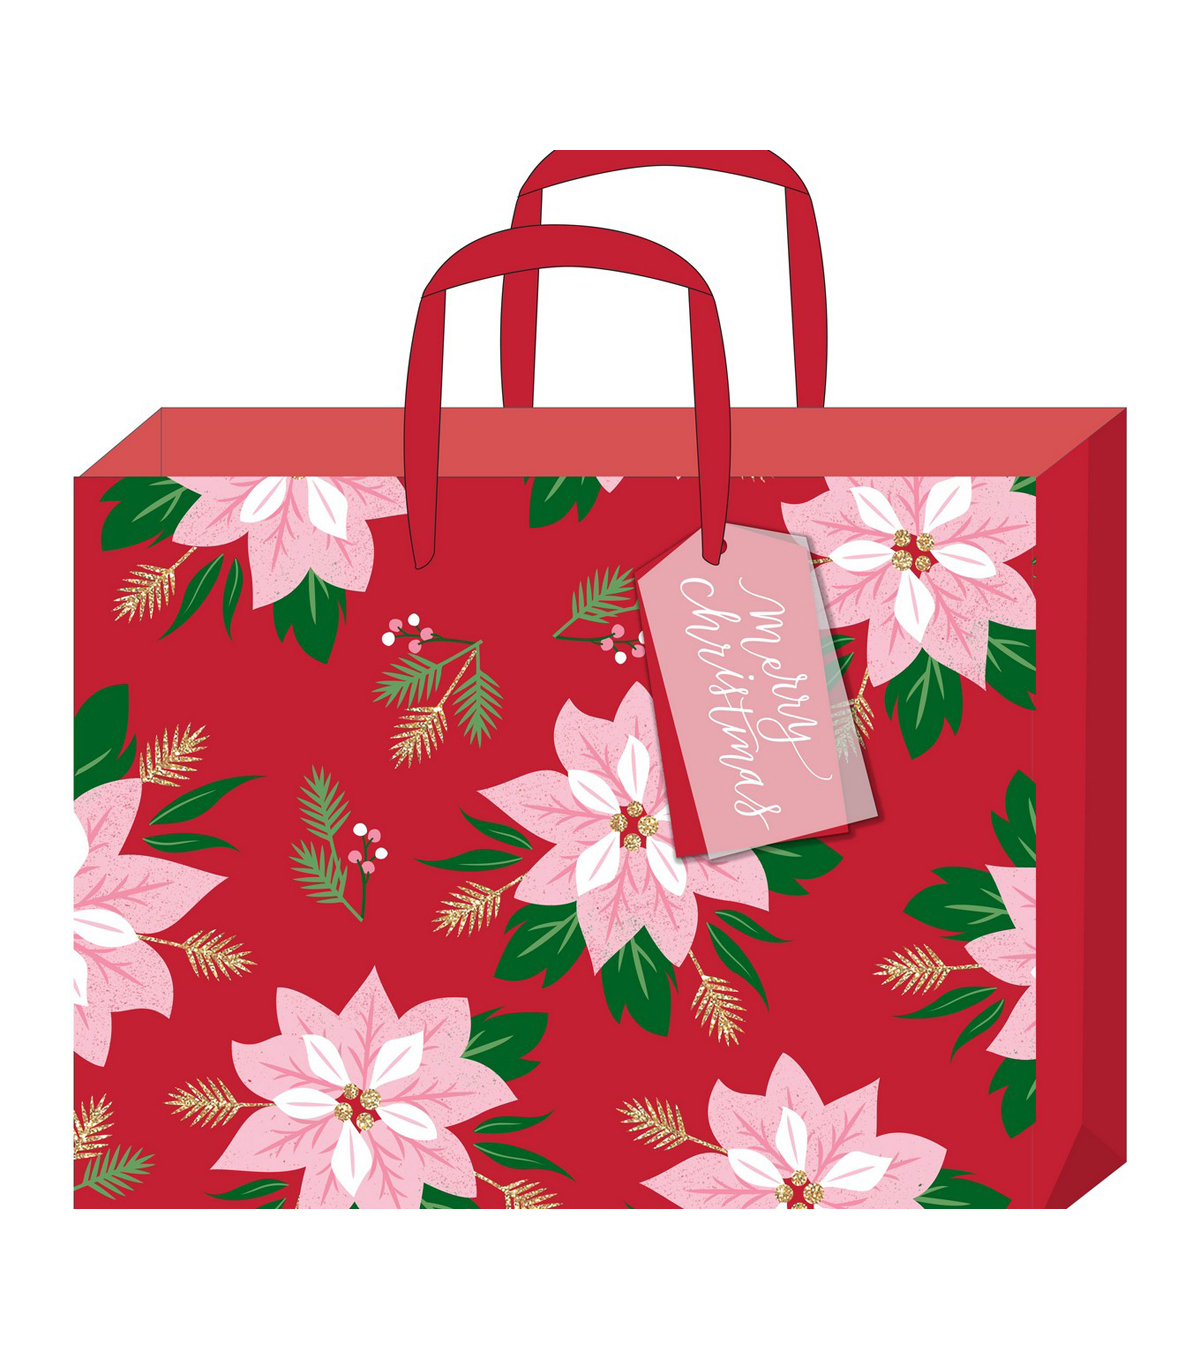 3 Designs of Cute Crafts Using Paper Bags American Crafts Large Gift Bag With Tag Poinsettia Gold Glitter